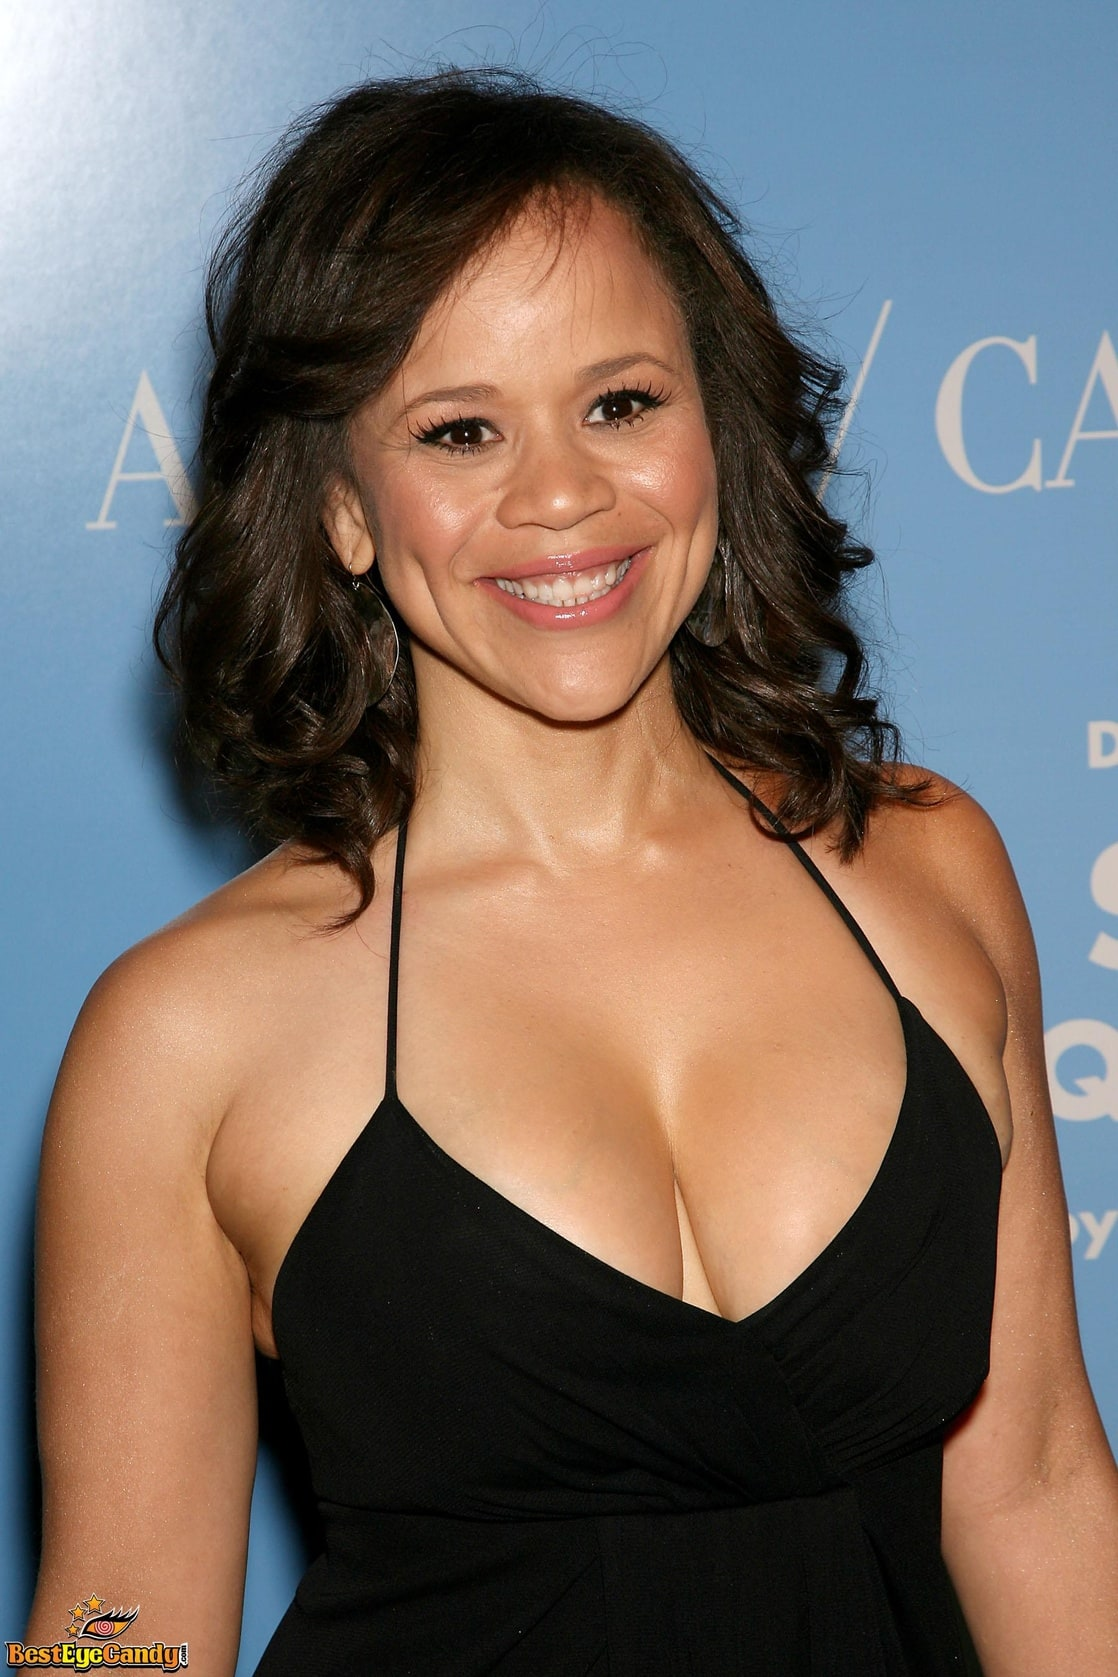 Rosie perez do the right thing topless 9